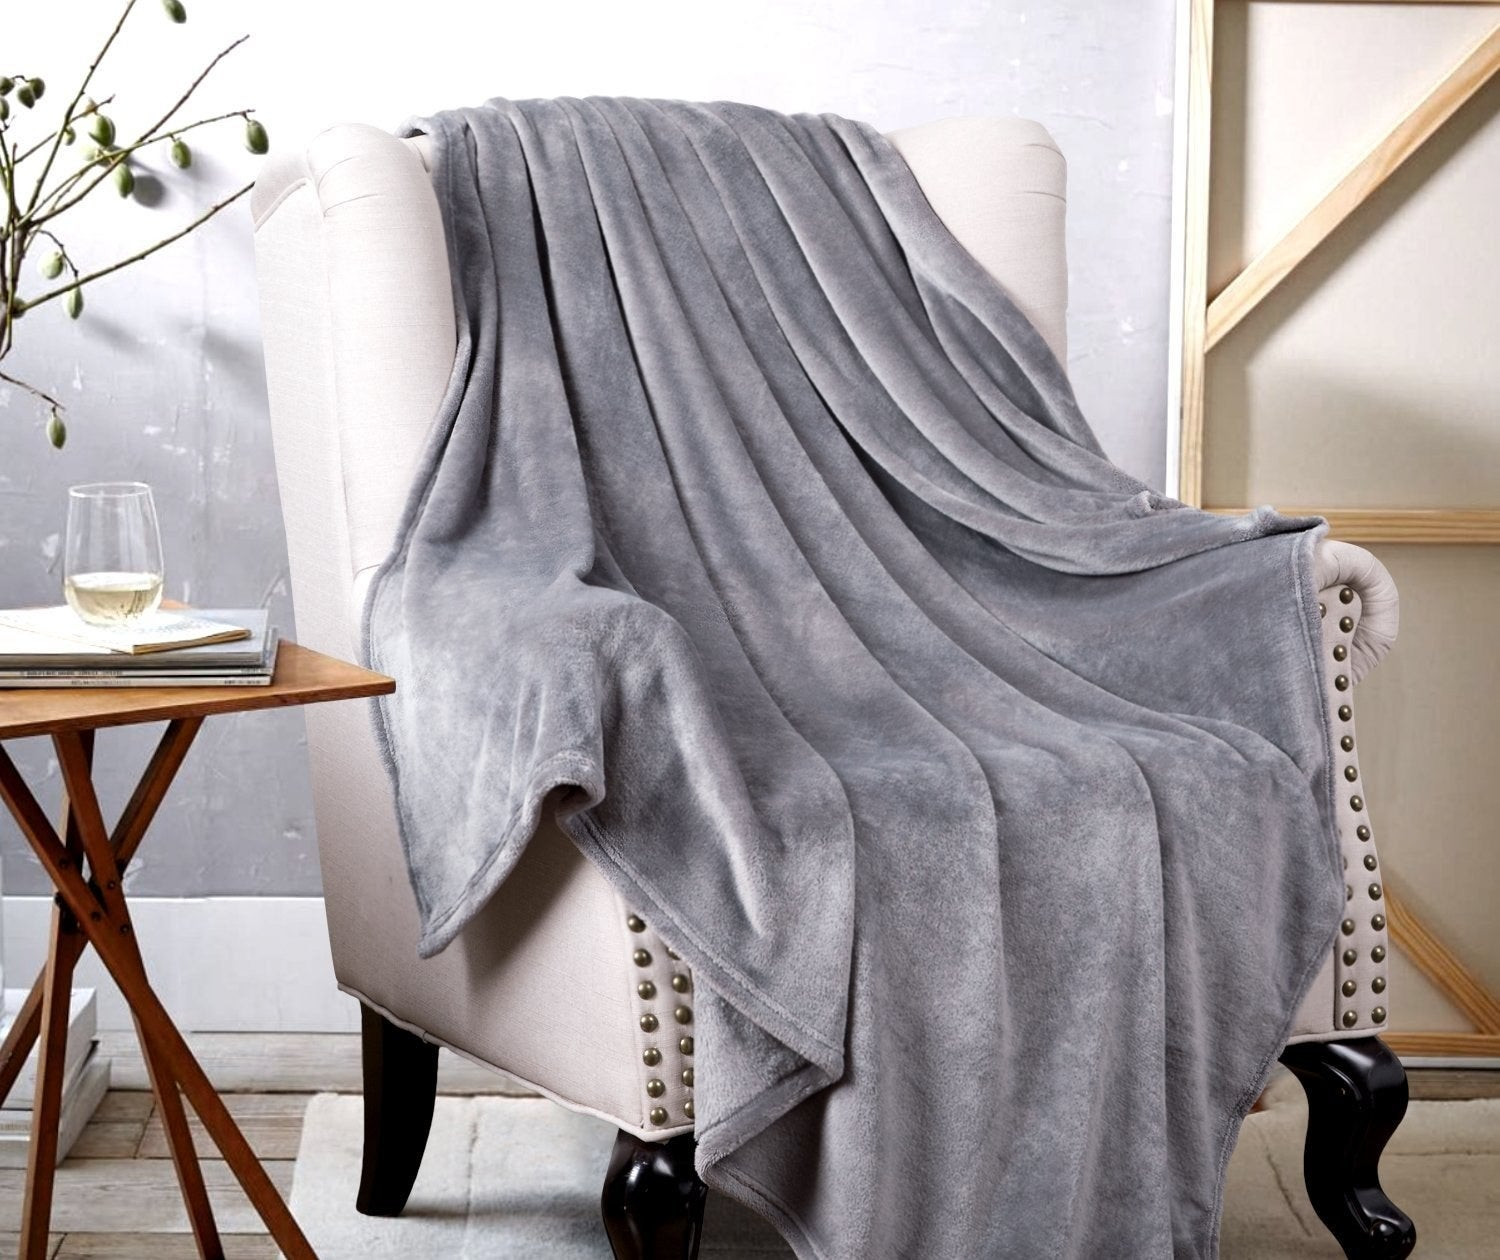 """Plus it's wrinkle and fade resistant, doesn't shed, and is suitable for all seasons. AND it's machine washable!Promising review: """"When this blanket first arrived, I held it up to my face, said 'It's so fluffy I'm gonna die!' and chuckled to myself. I set it up as a throw to make the guest chair in my office a little more inviting and colorful. Little did I know my exclamation would be prophetic. The very next day, I found my furbaby cat almost too relaxed to remember to breathe. Despite it, he refuses to leave the almost womb-like softness and warmth of this thing which is the blanket equivalent of Flexaril. I can't get him out of it. I'm afraid I'm going to lose him. Thanks, Bedsure for a killer blanket (in all seriousness, the cat is fine. He loves the blanket, and so do I. When he's willing to share.)."""" —Ninacarme N MonroeGet it from Amazon for $15.99 (available in four sizes and in ten colors) or a similar style from Walmart for $6+ (available in two colors)."""